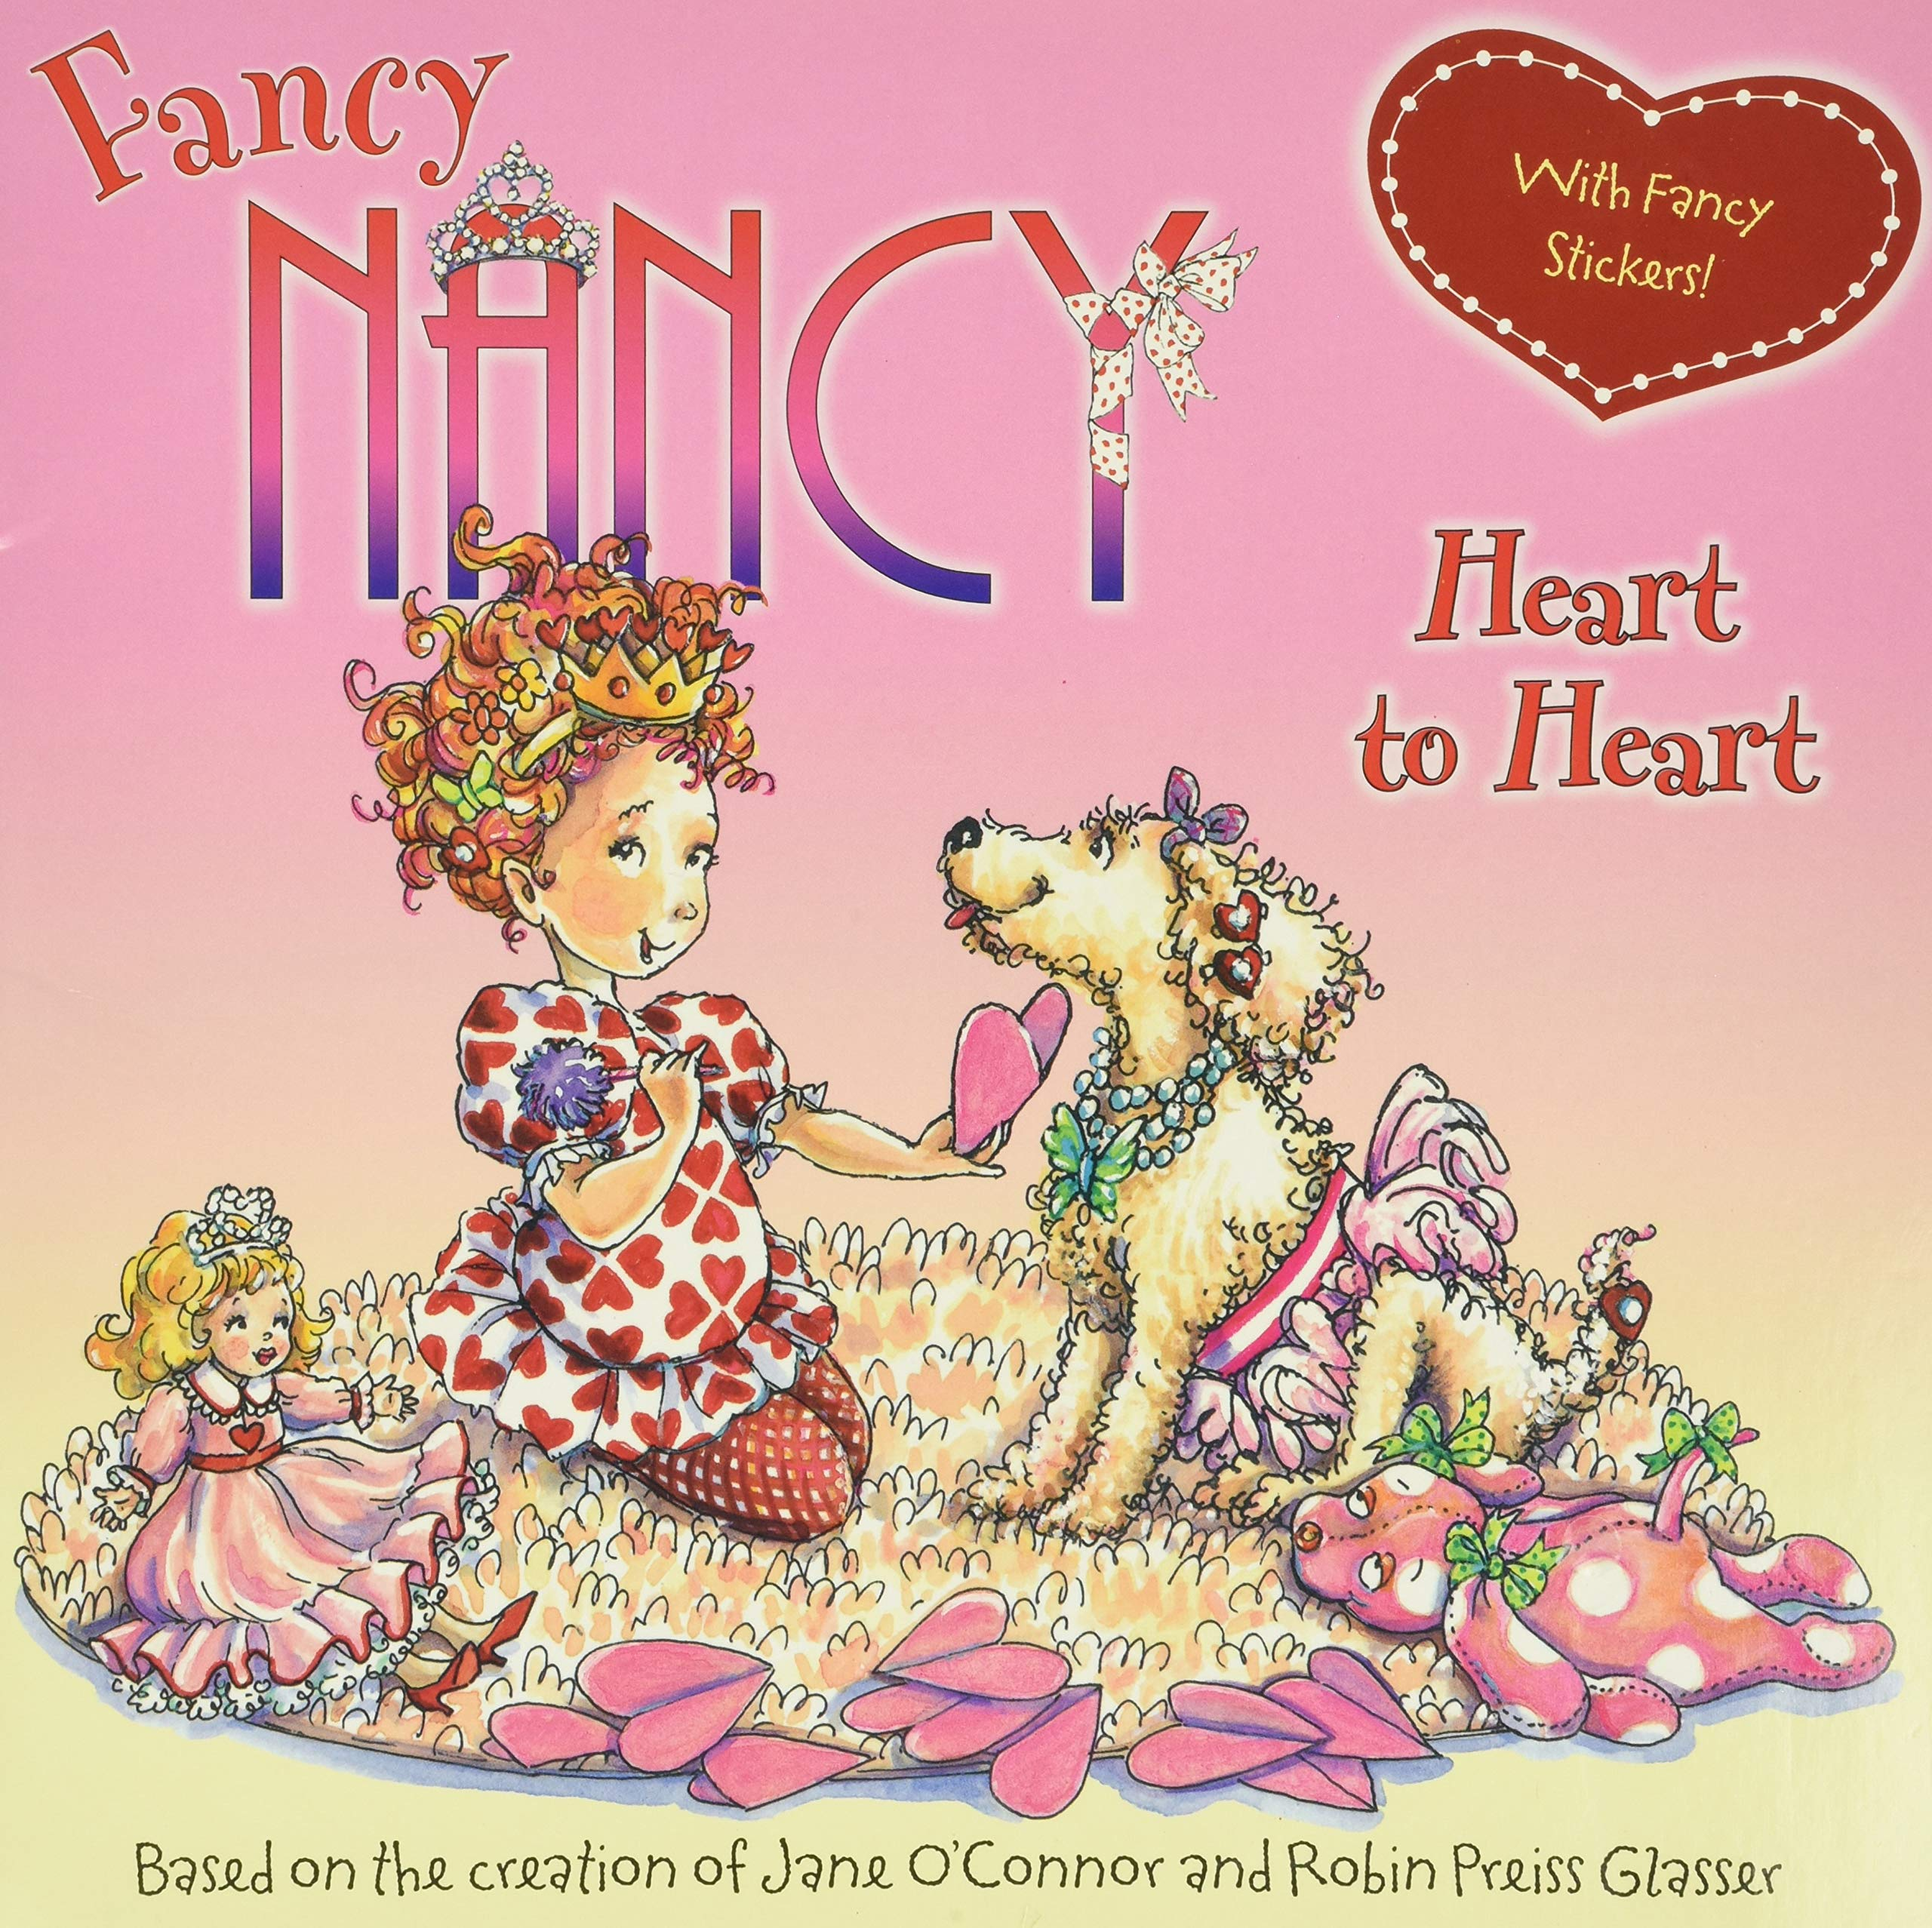 Fancy Nancy Heart To Heart With Fancy Stickers O Connor Jane Glasser Robin Preiss 9780061235962 Amazon Com Books